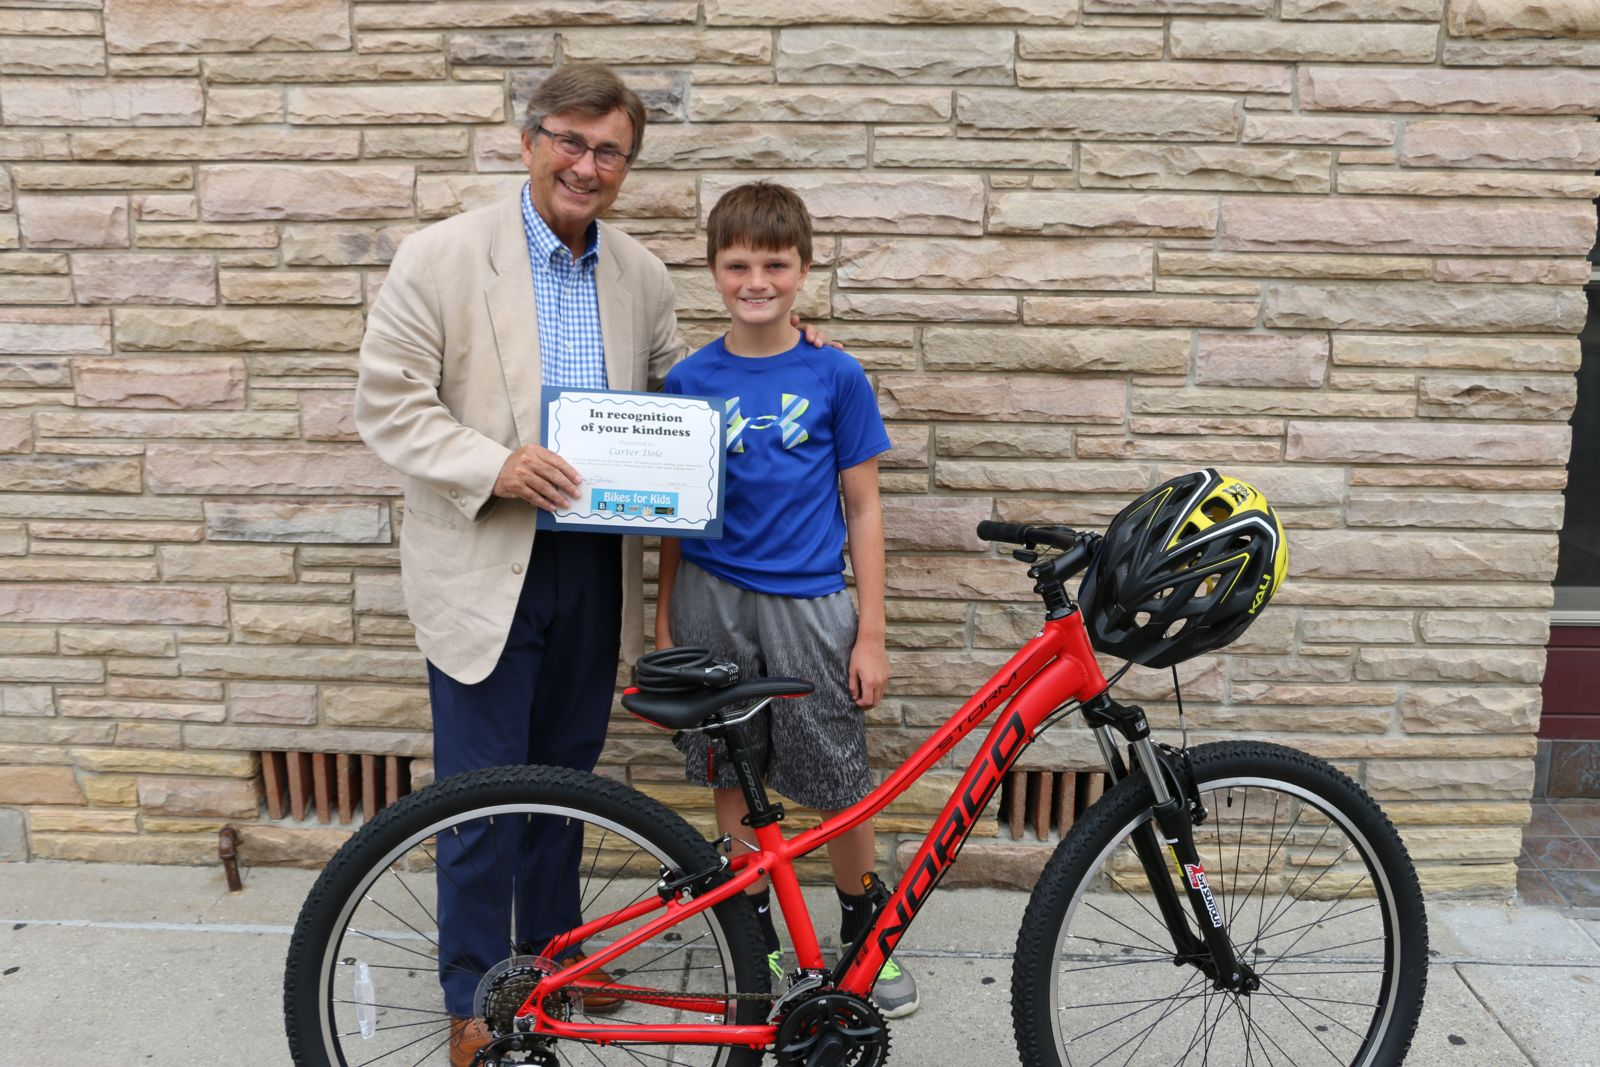 Joe Barberi and Carter Dole - Bikes for Kids winner 2016